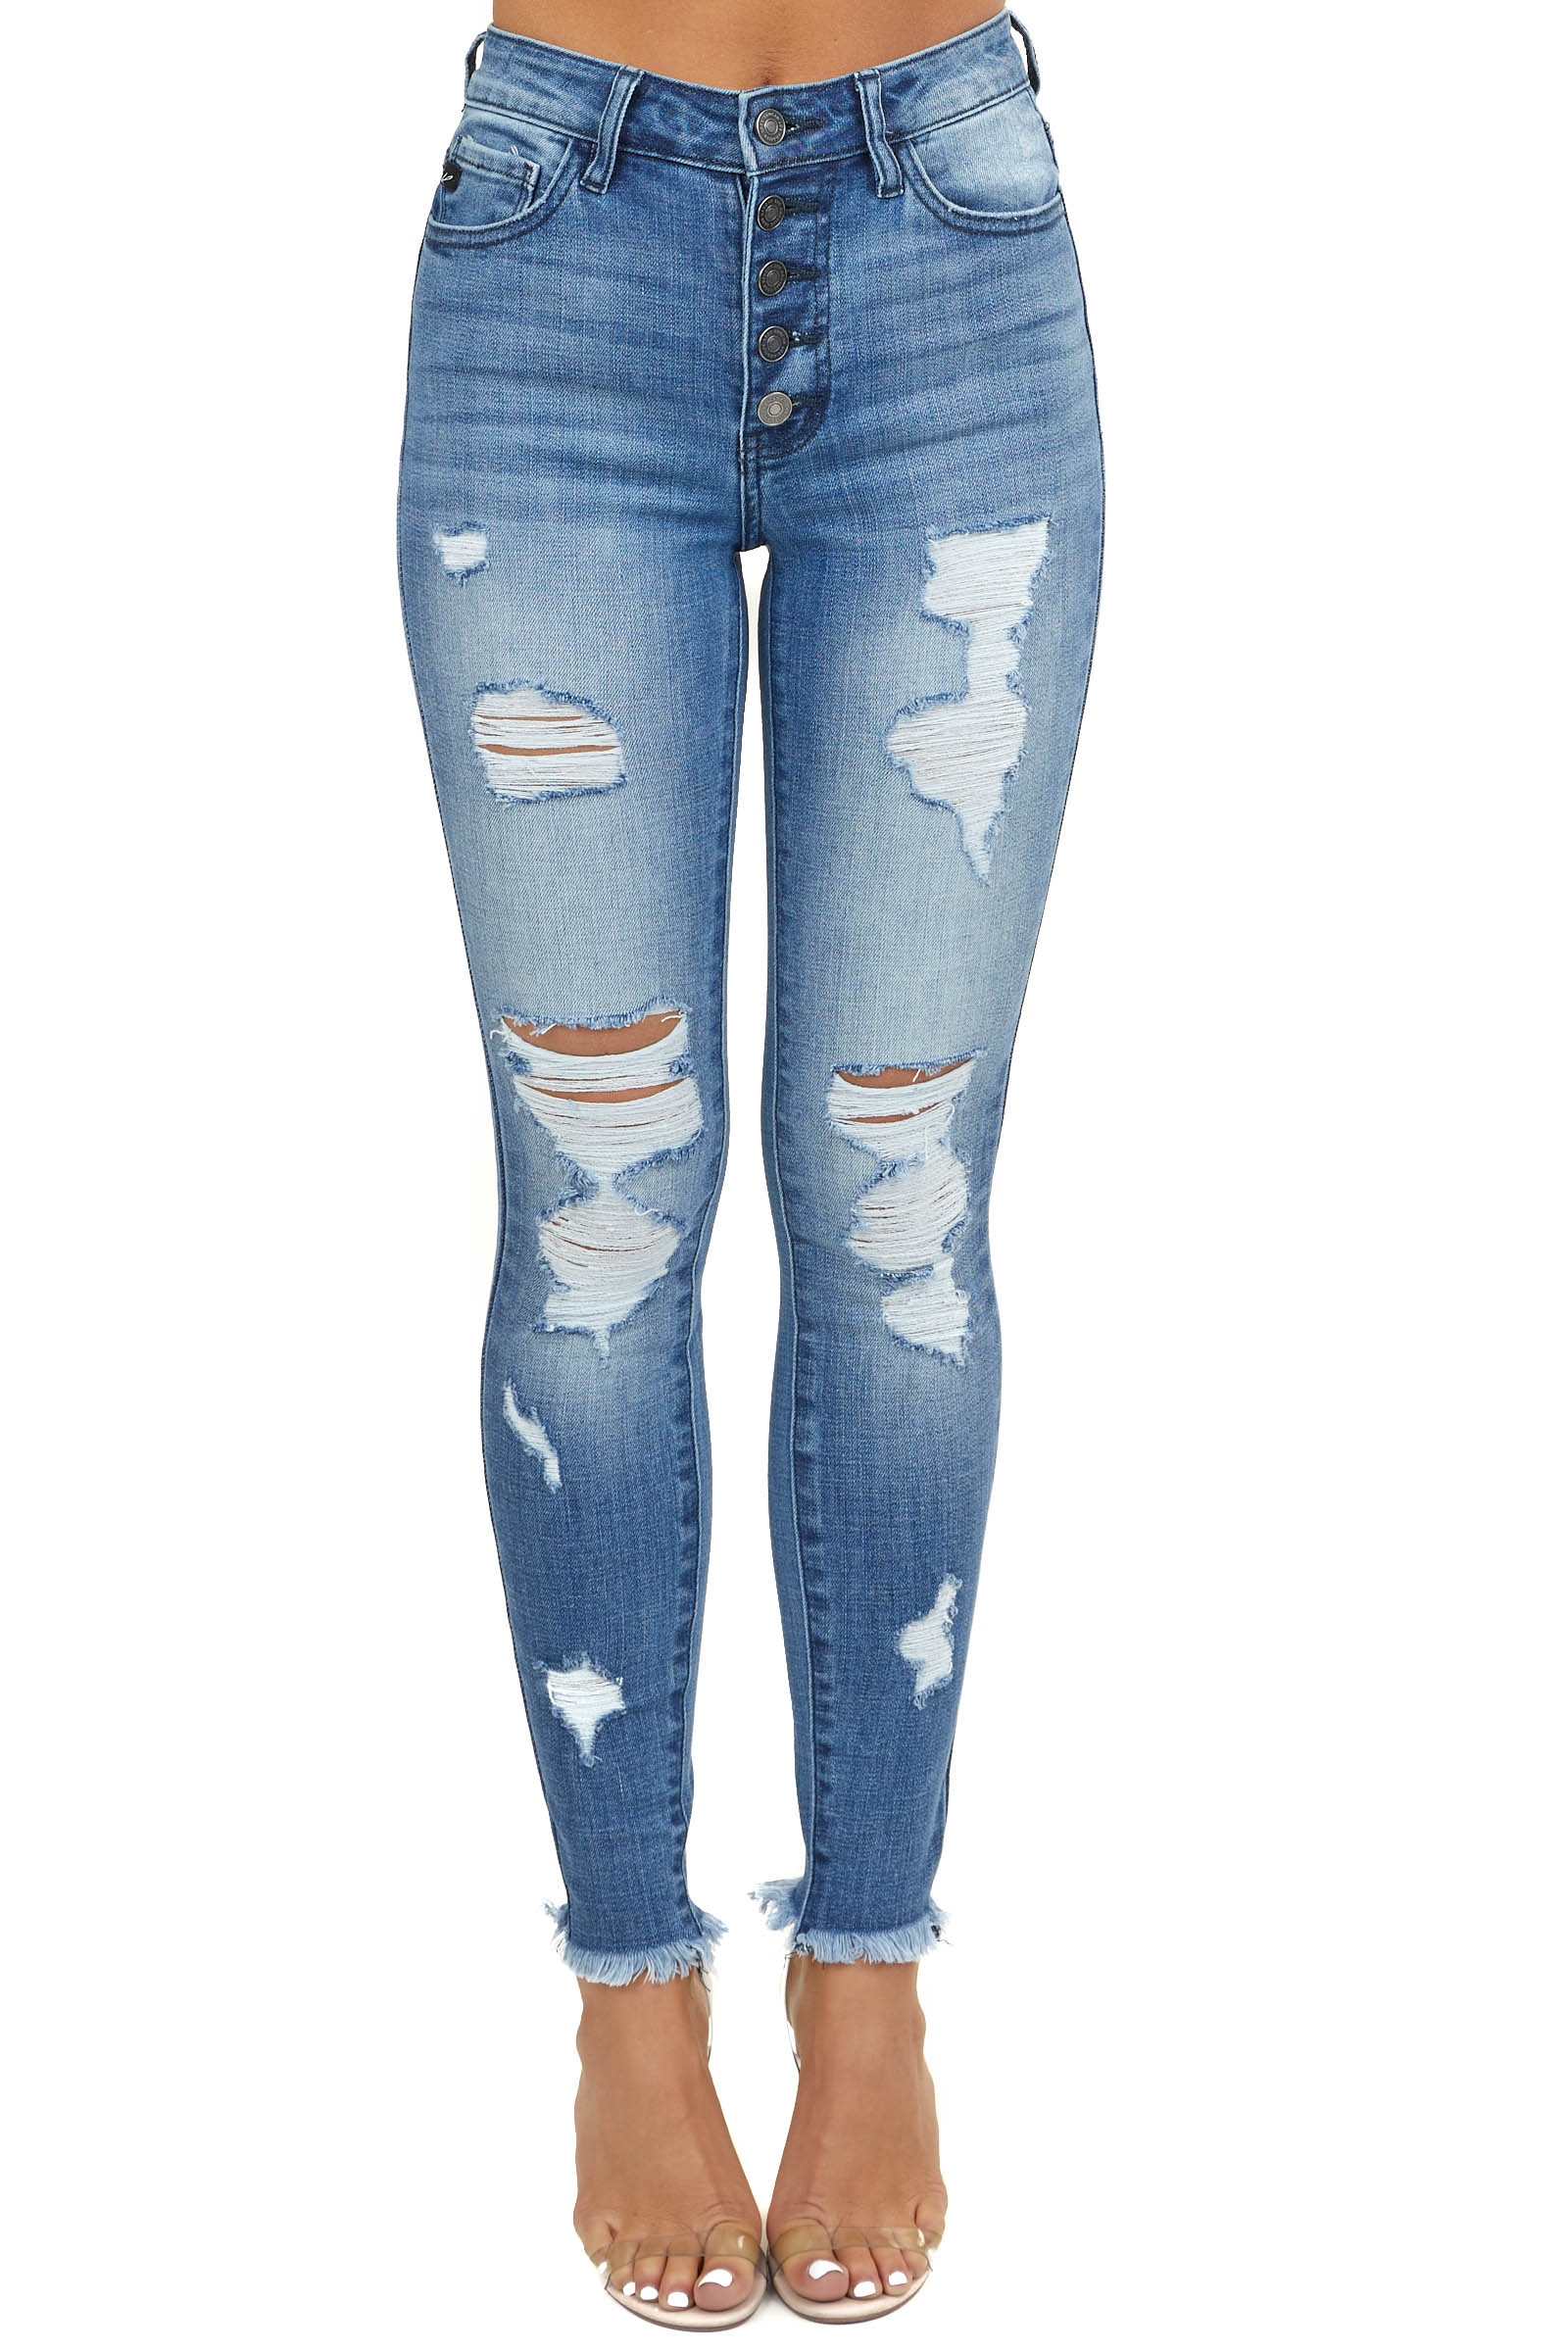 Medium Wash High Rise Distressed Skinny Jeans with Fray